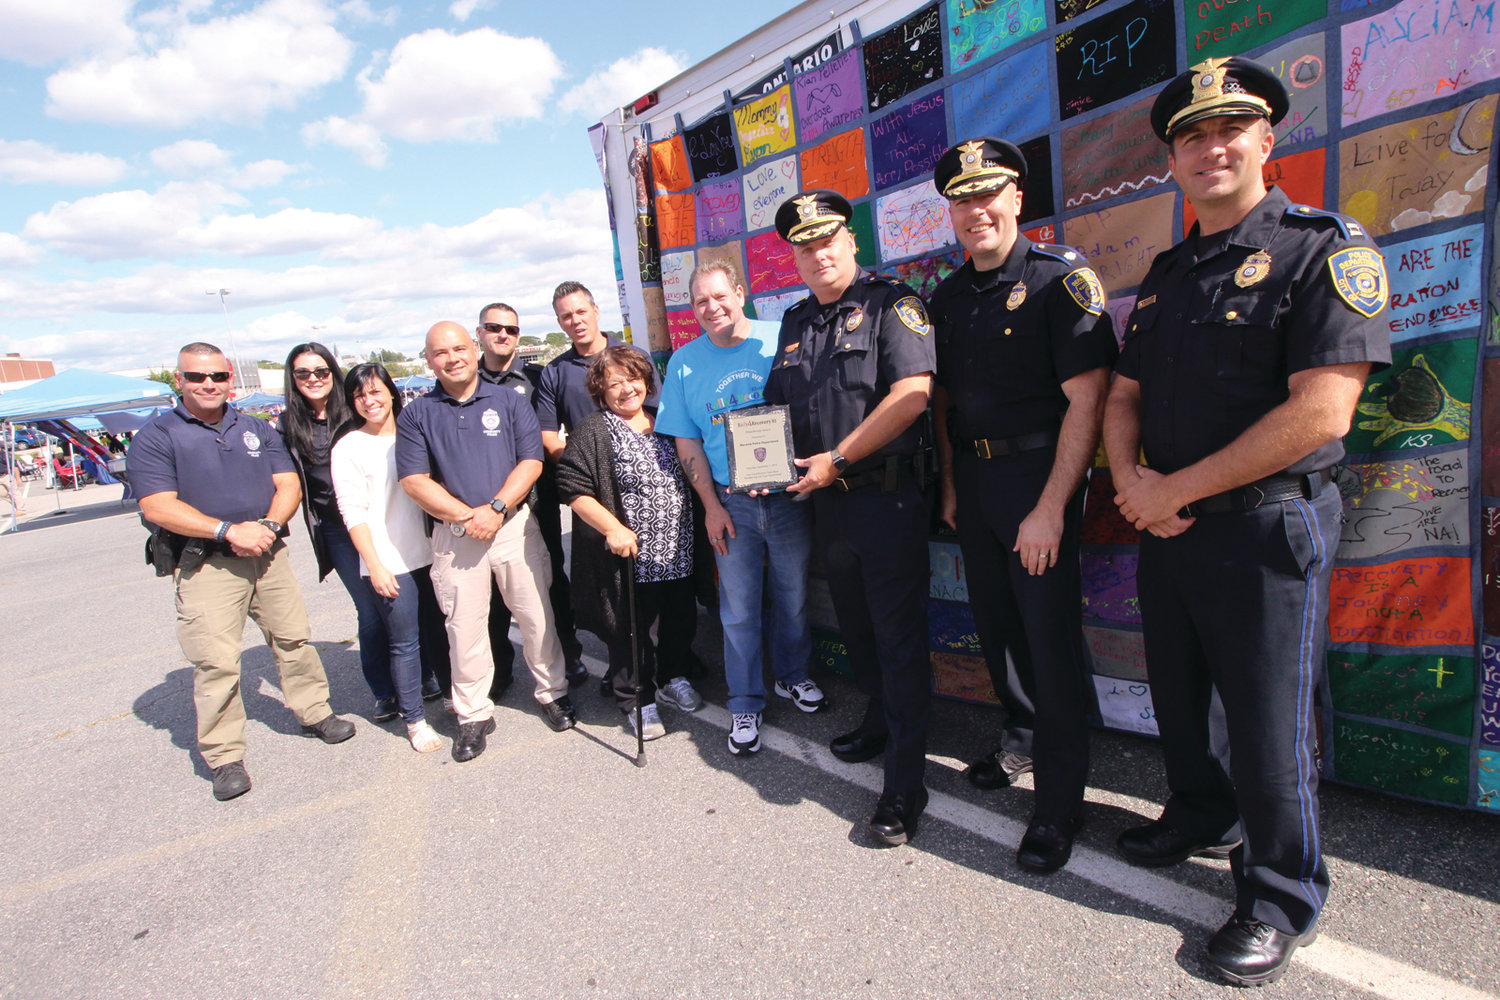 A COMMUNITY EFFORT: With a quilt honoring those in recovery as a backdrop, Col. Rich Rathbun displays the award presented Warwick Police on behalf of the Rally 4 Recovery with Rally 4 Recovery president George O'Toole, members of the department and council members Donna Travis and Steve McAllister.